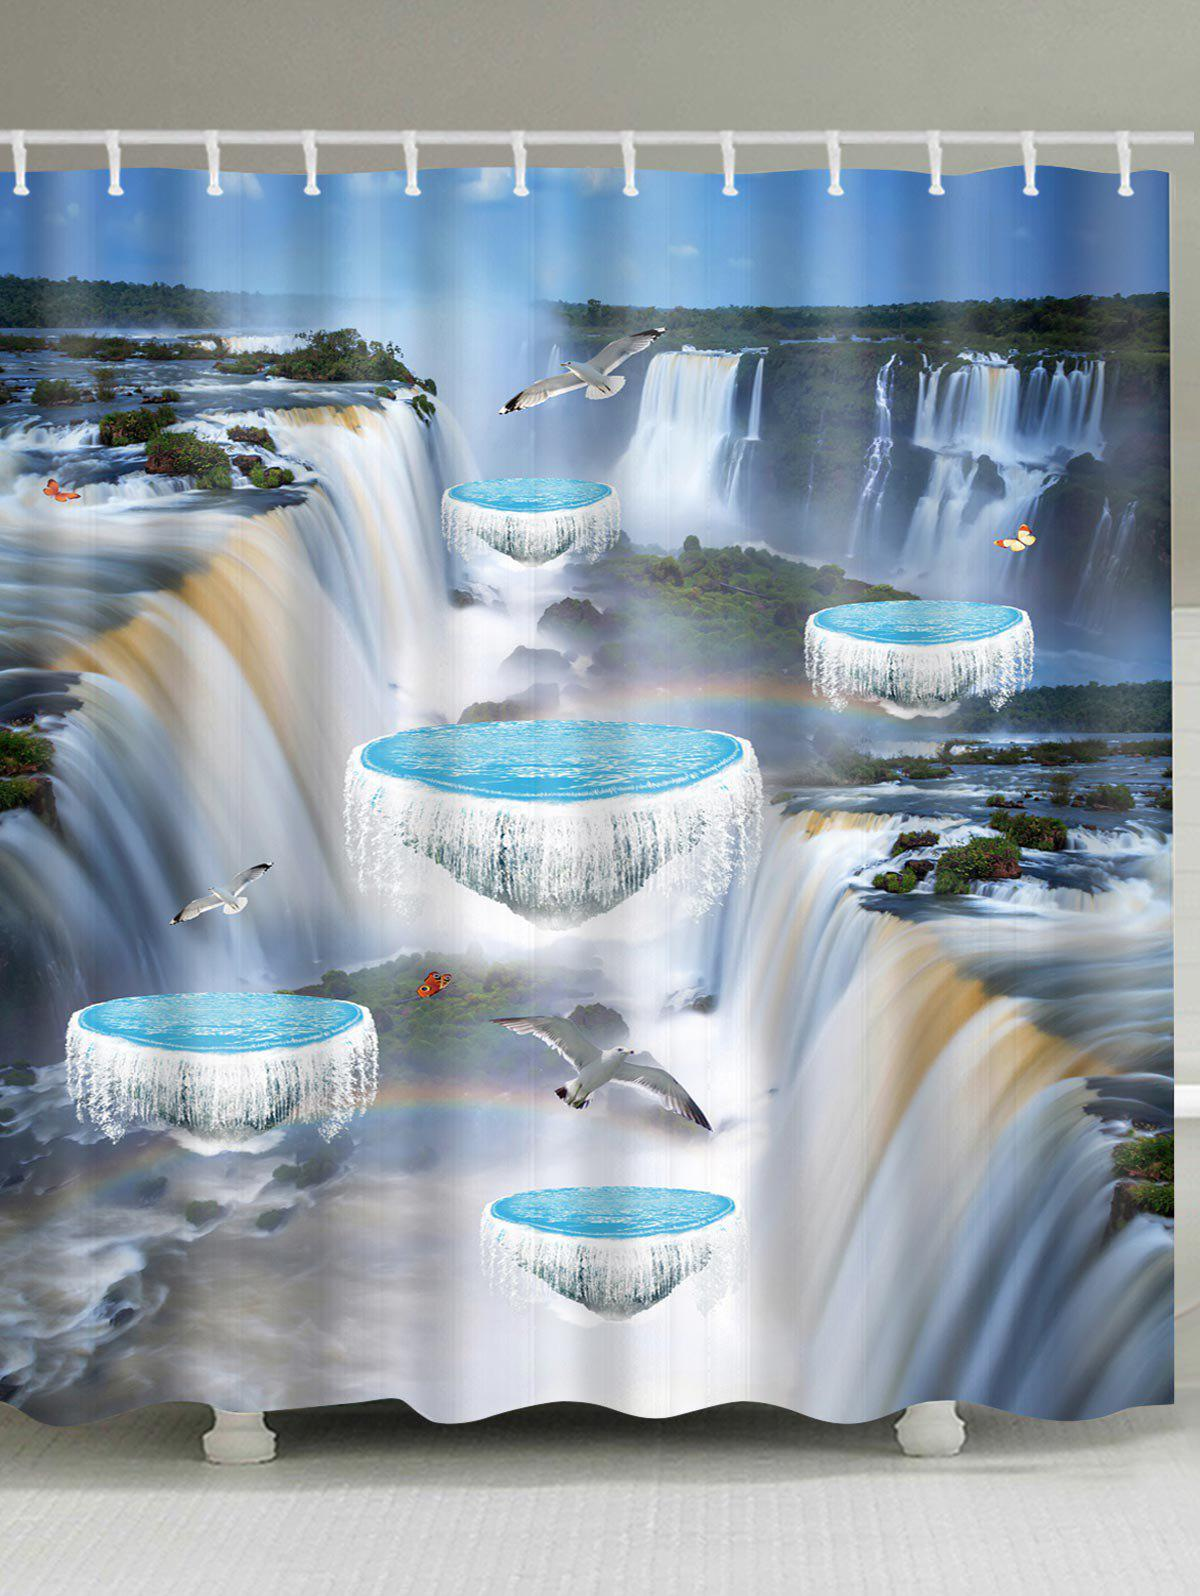 3D Falls Flying Birds Print Bath Shower Curtain - BUTTERFLY BLUE W71 INCH * L71 INCH